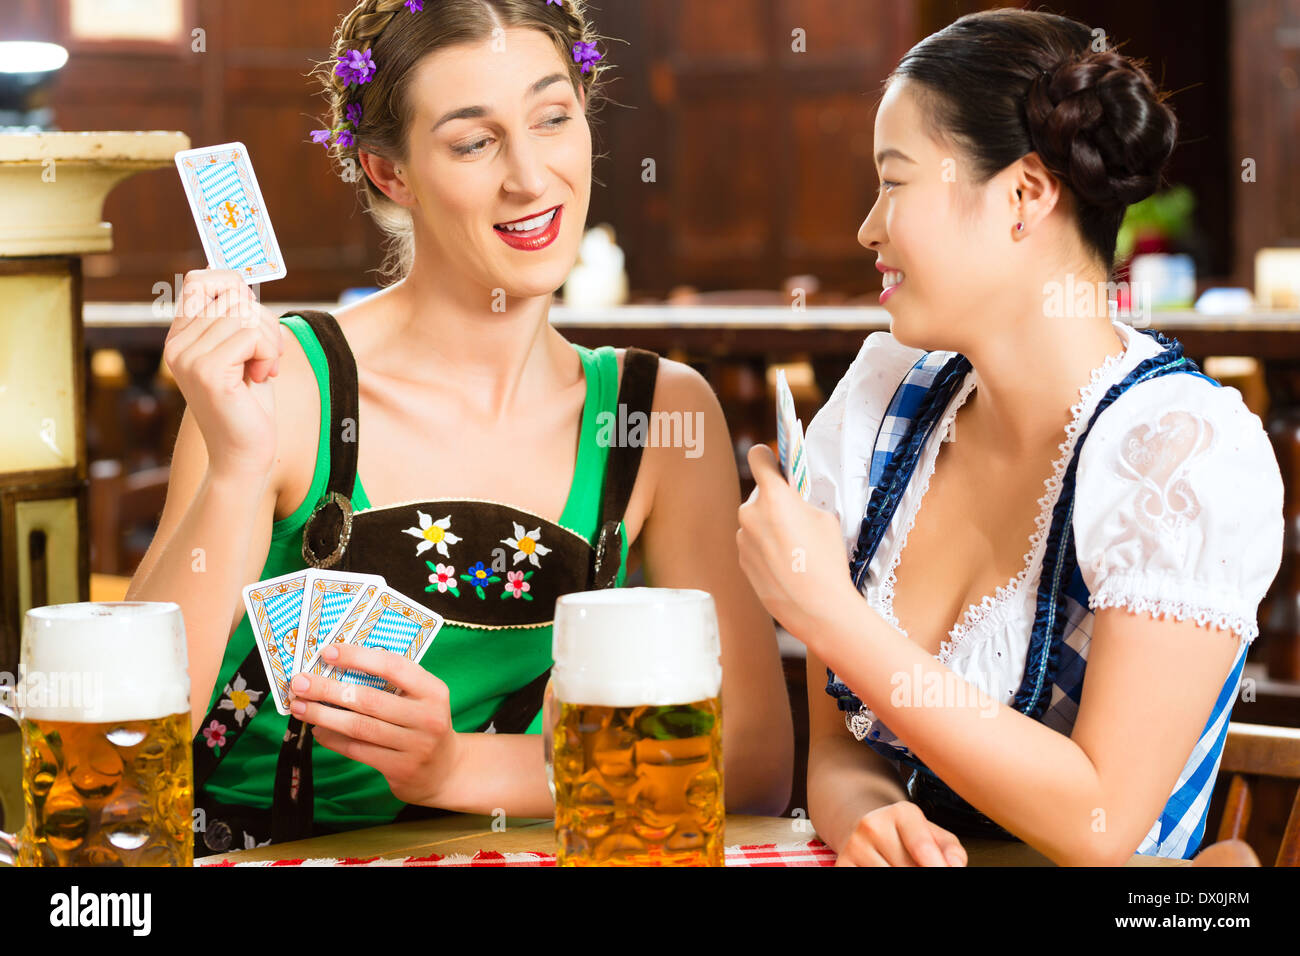 In Pub - friends in Tracht, Dirndl and Lederhosen drinking a fresh beer in Bavaria, Germany playing cards - Stock Image